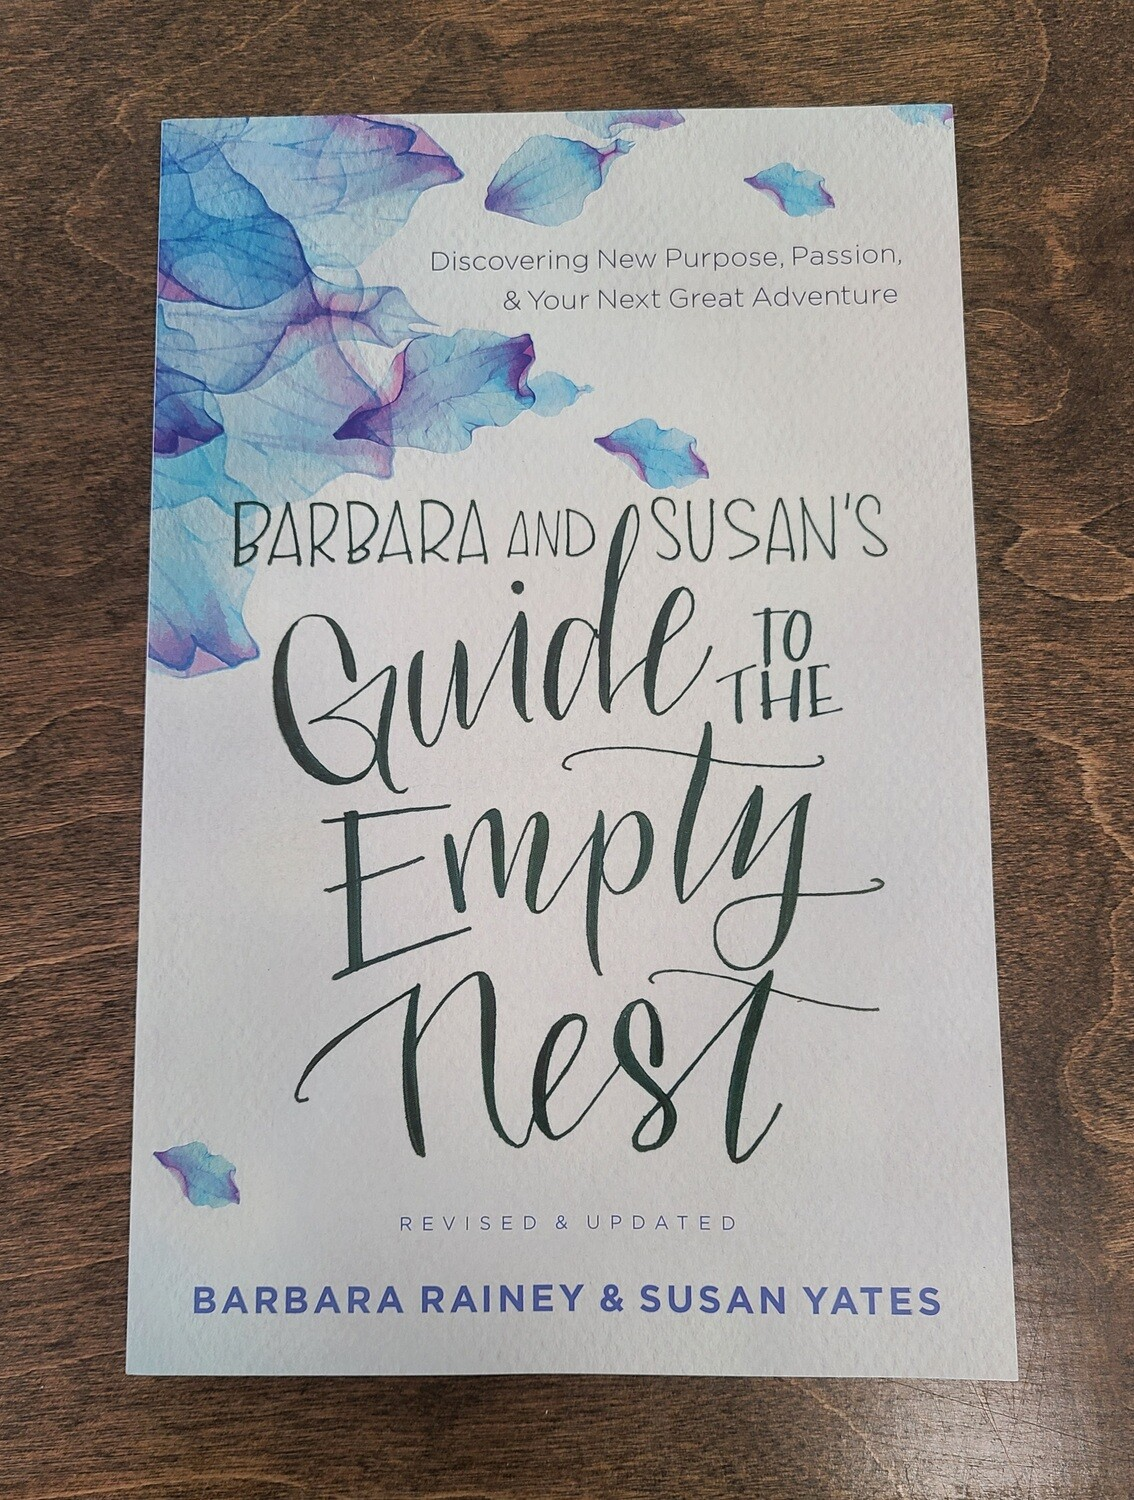 Barbara and Susan's Guide to the Empty Nest by Barbara Rainey and Susan Yates